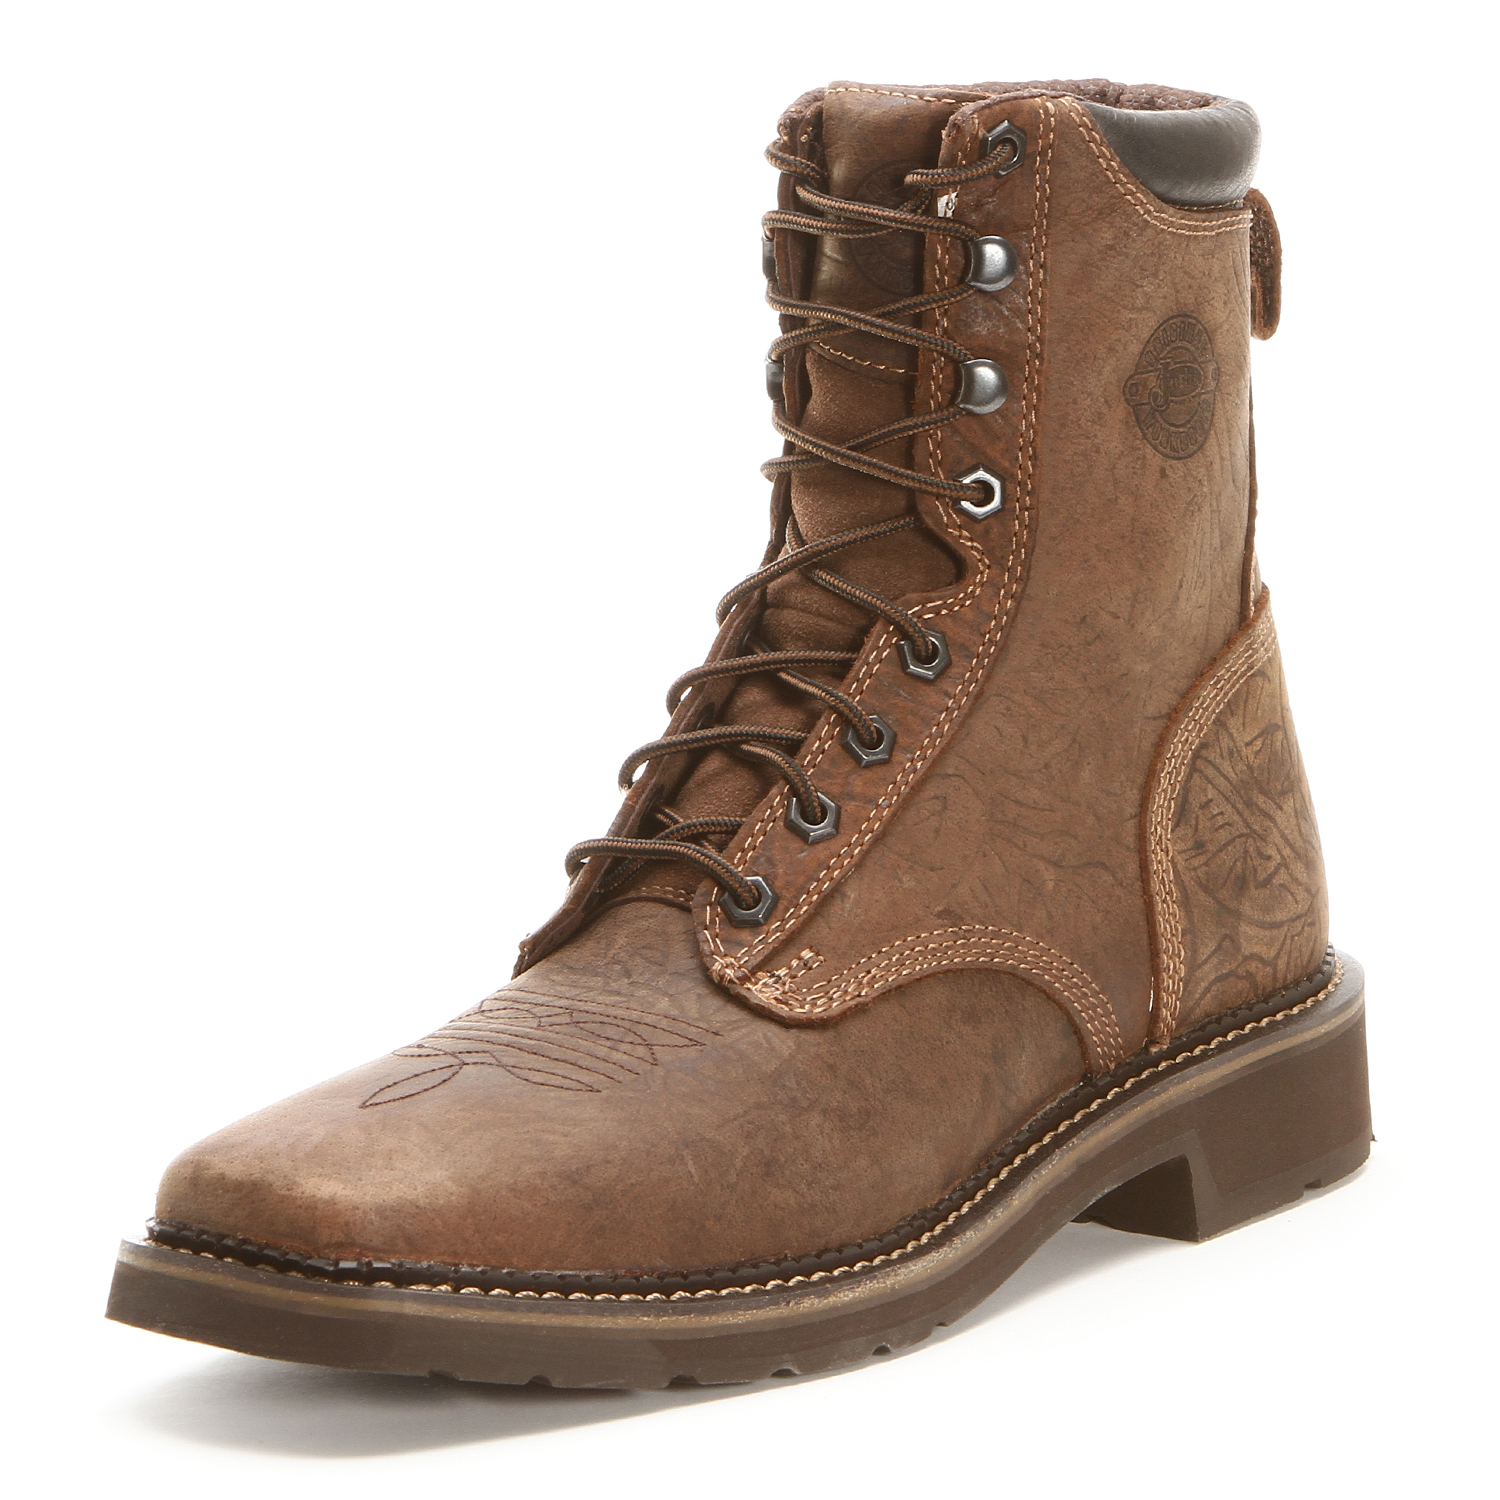 Lace Up Boots For Men NgWpU1Dc